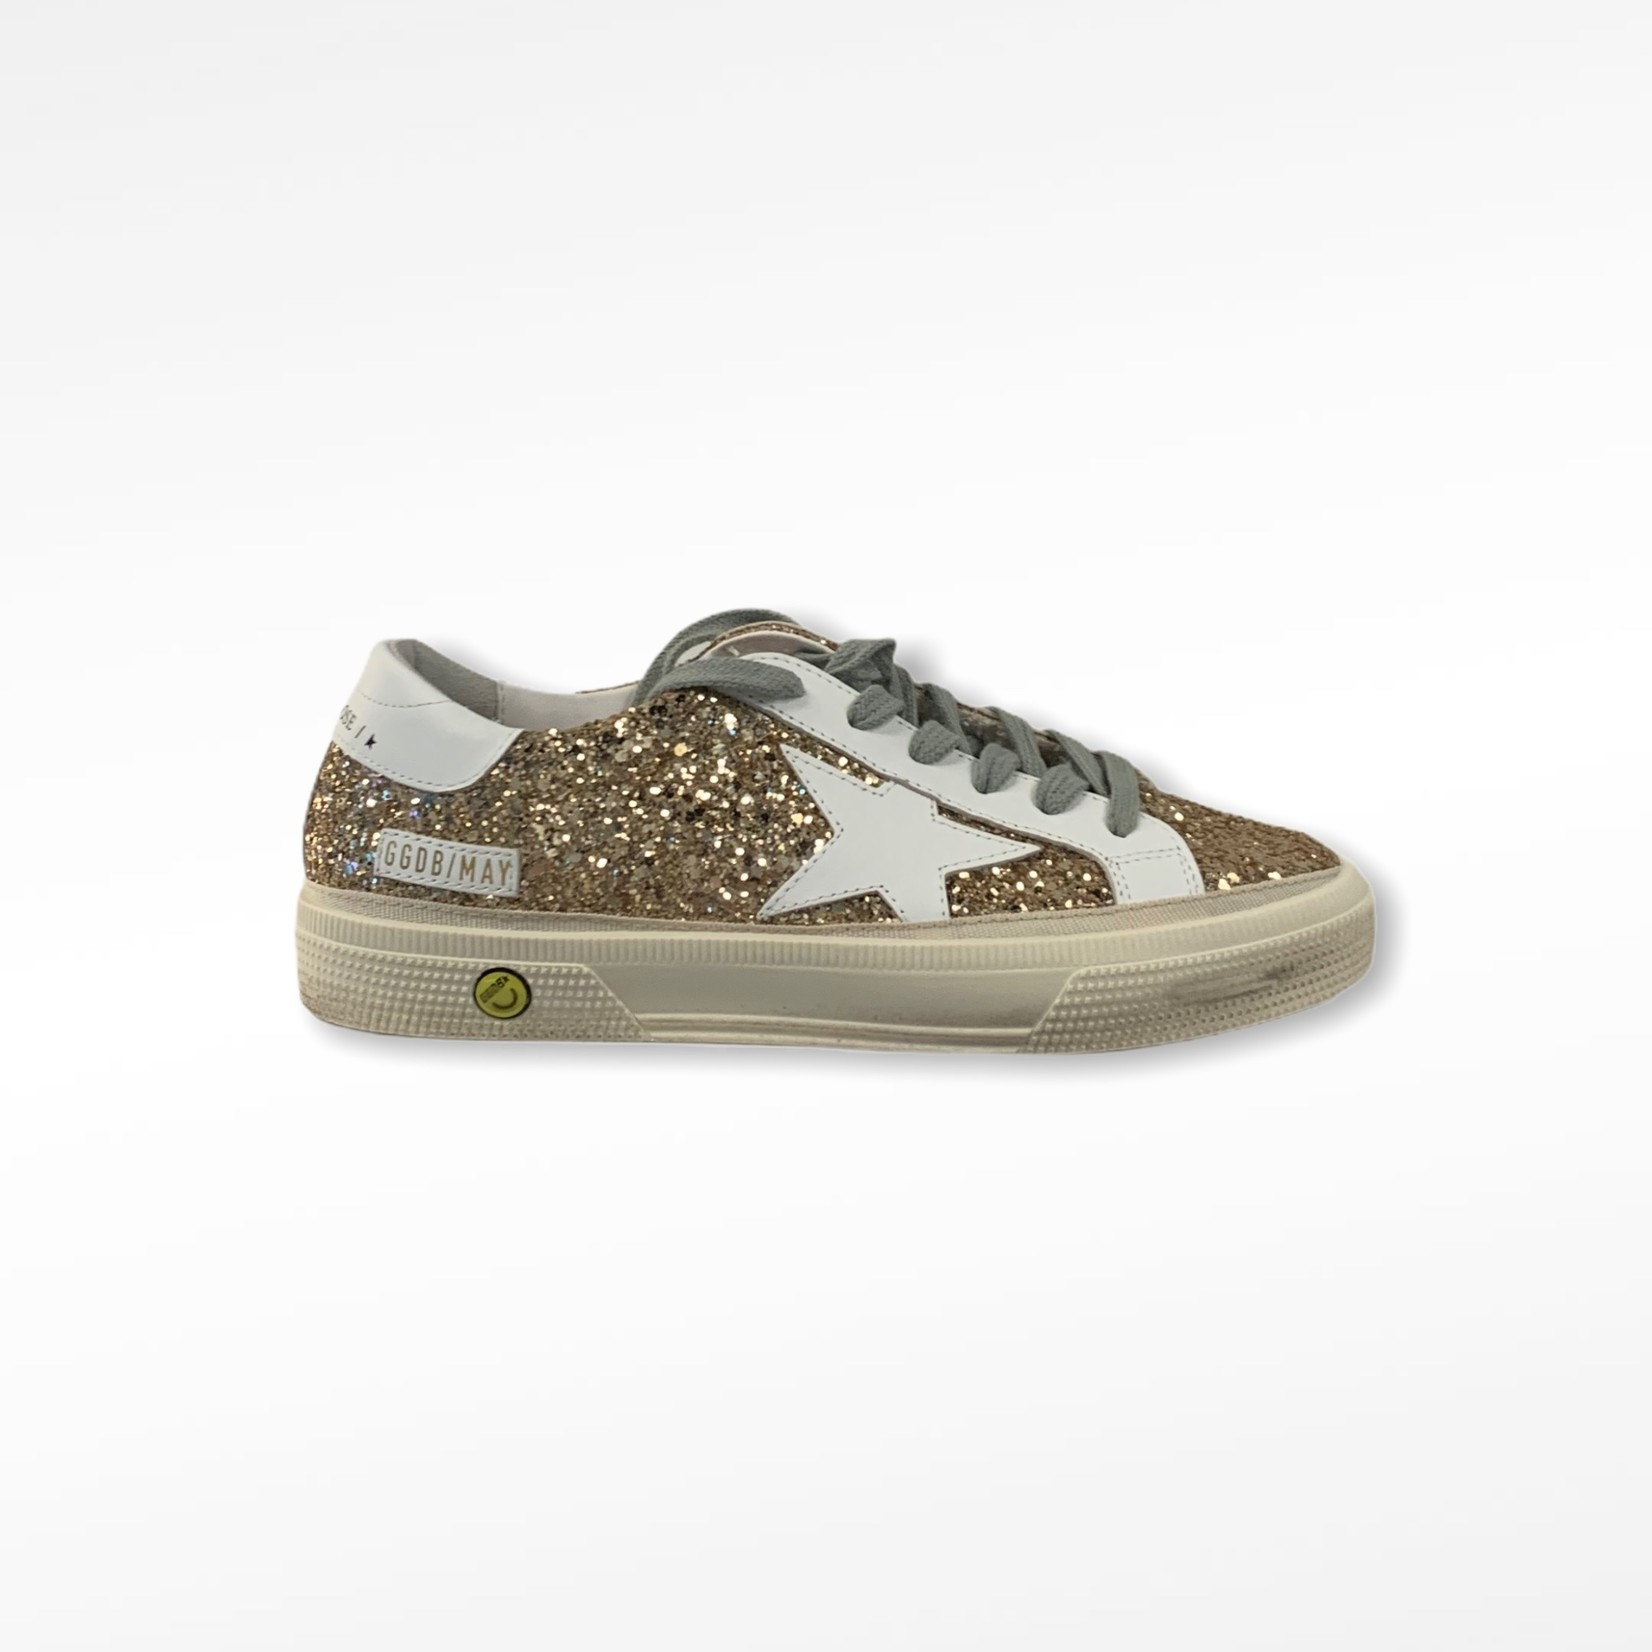 Golden Goose may glitter upper leather star and heel